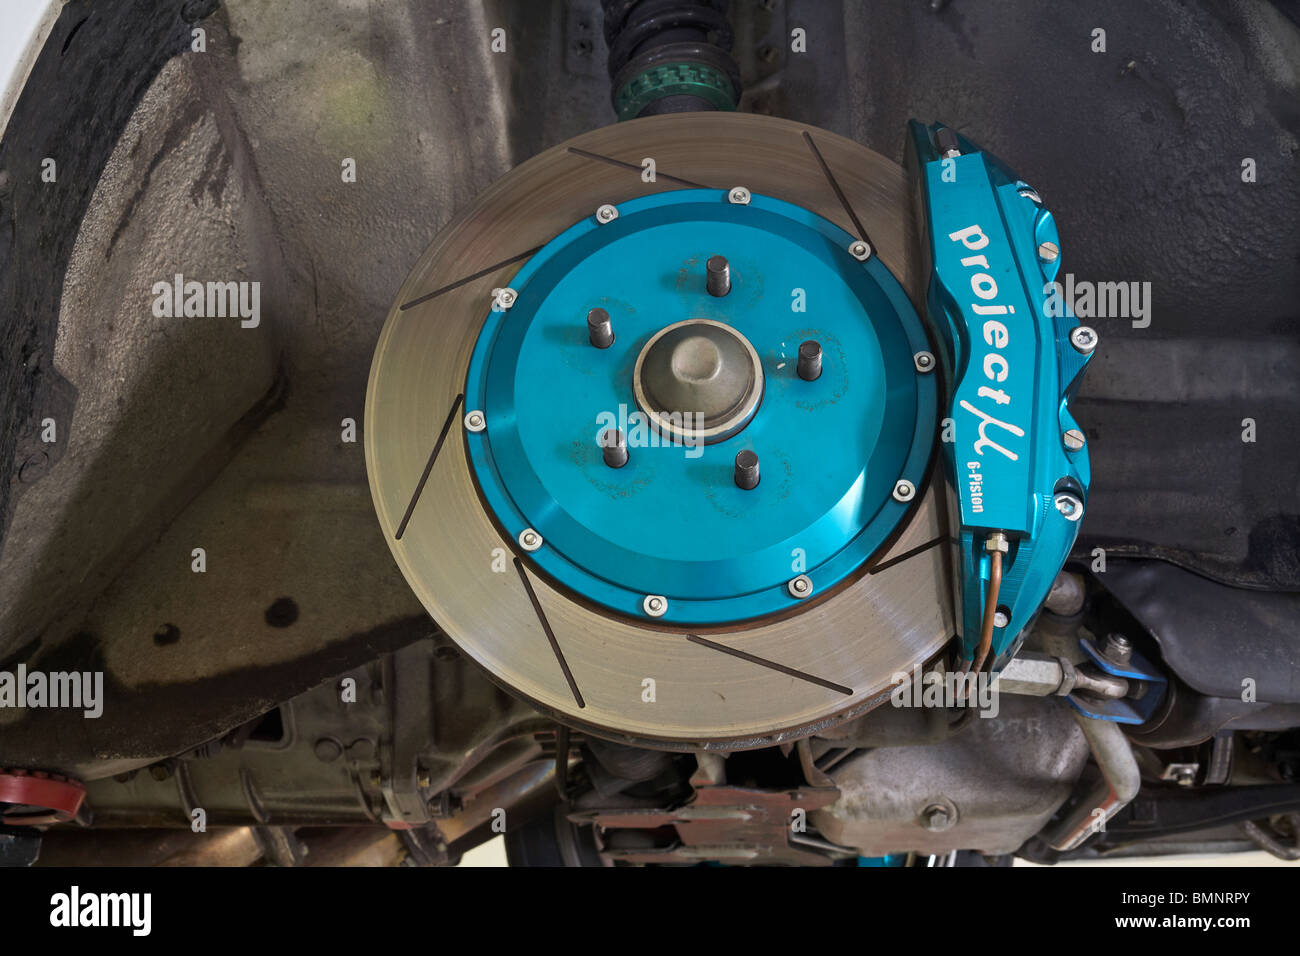 Brake disc (rotor) and calliper on a modified car - Stock Image